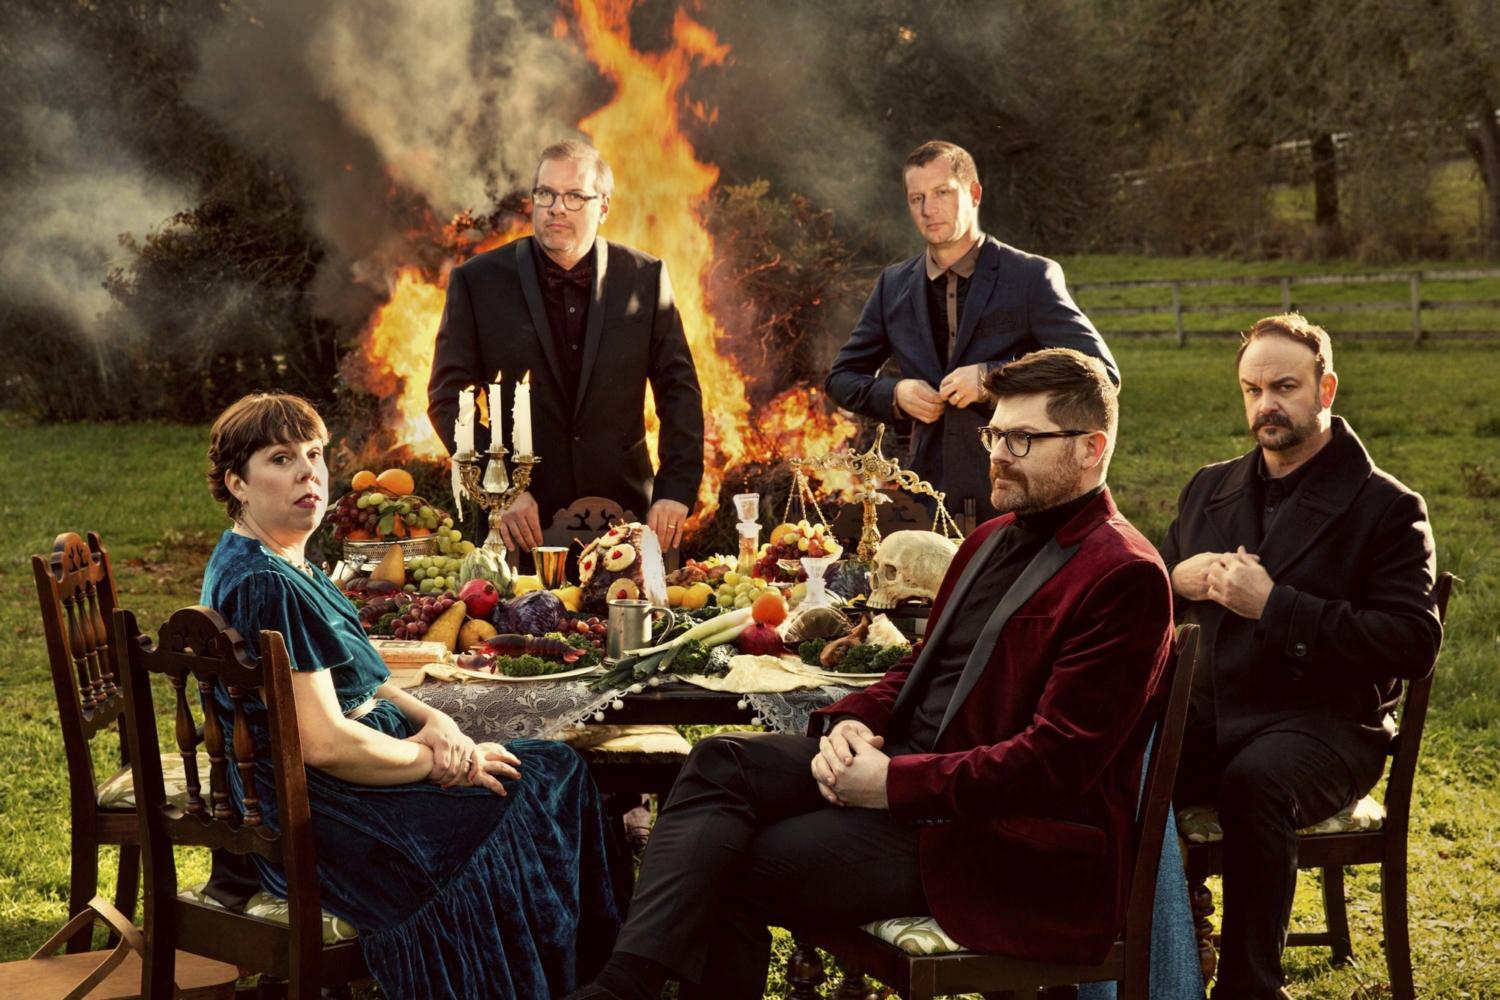 The Decemberists announce new album 'I'll Be Your Girl'